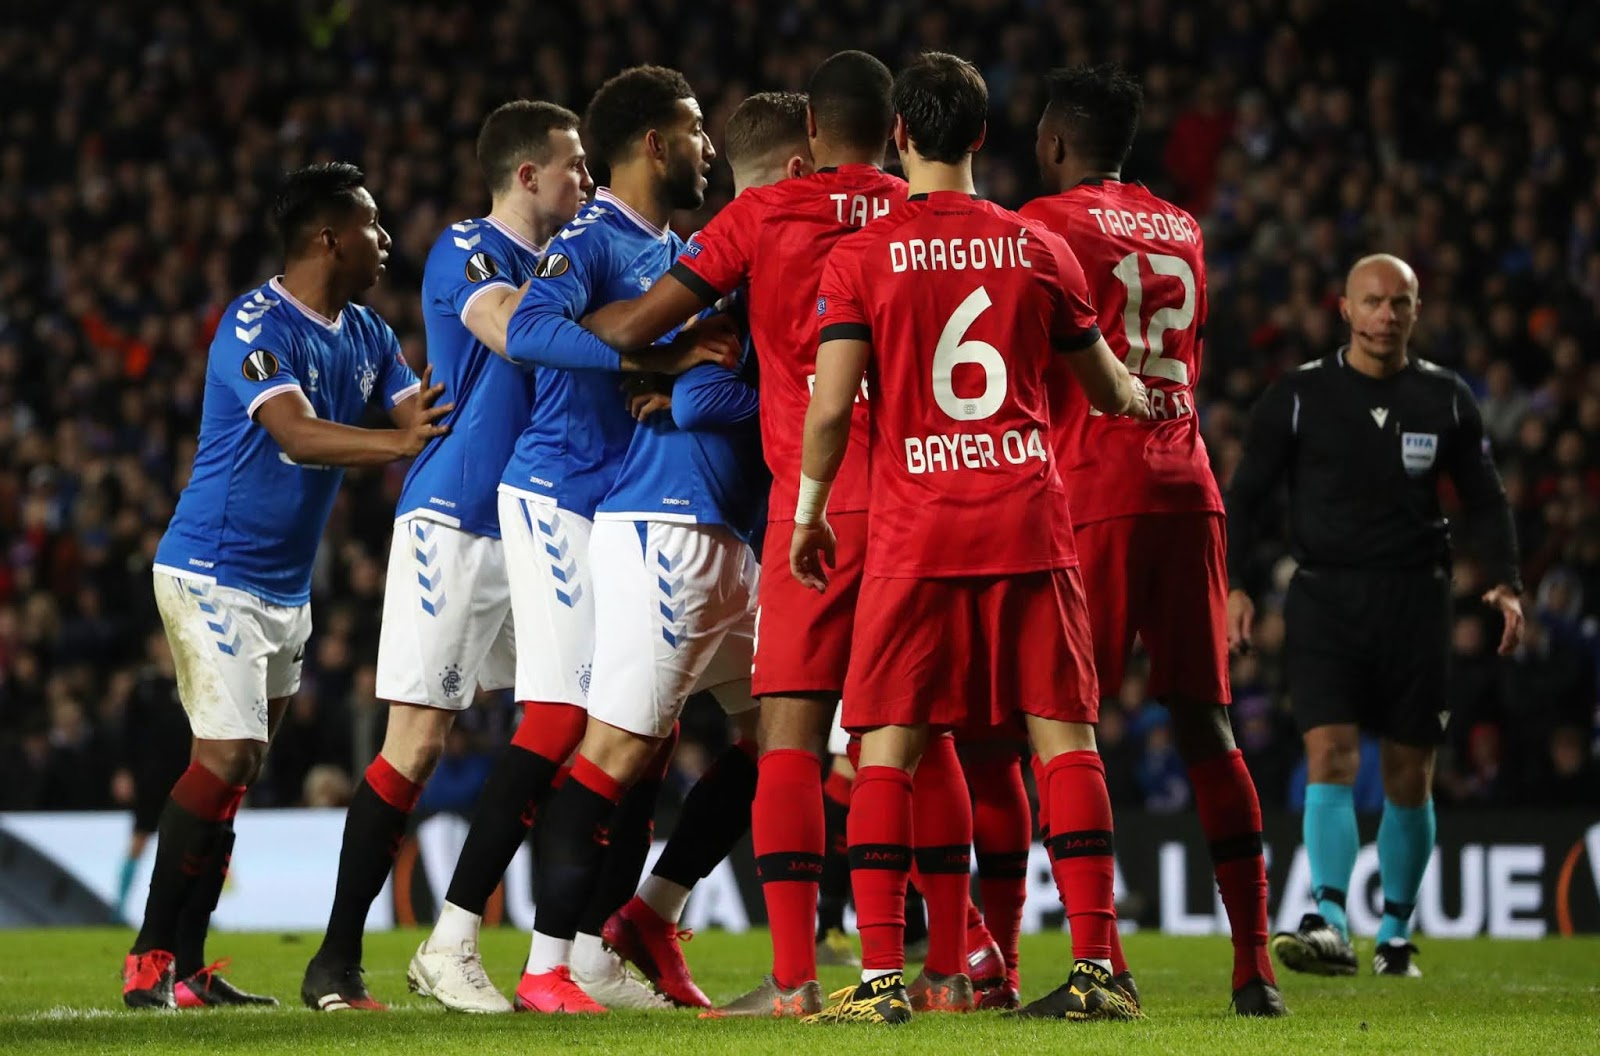 """""""A match to remember""""; Bayer v Rangers – preview and analysis"""